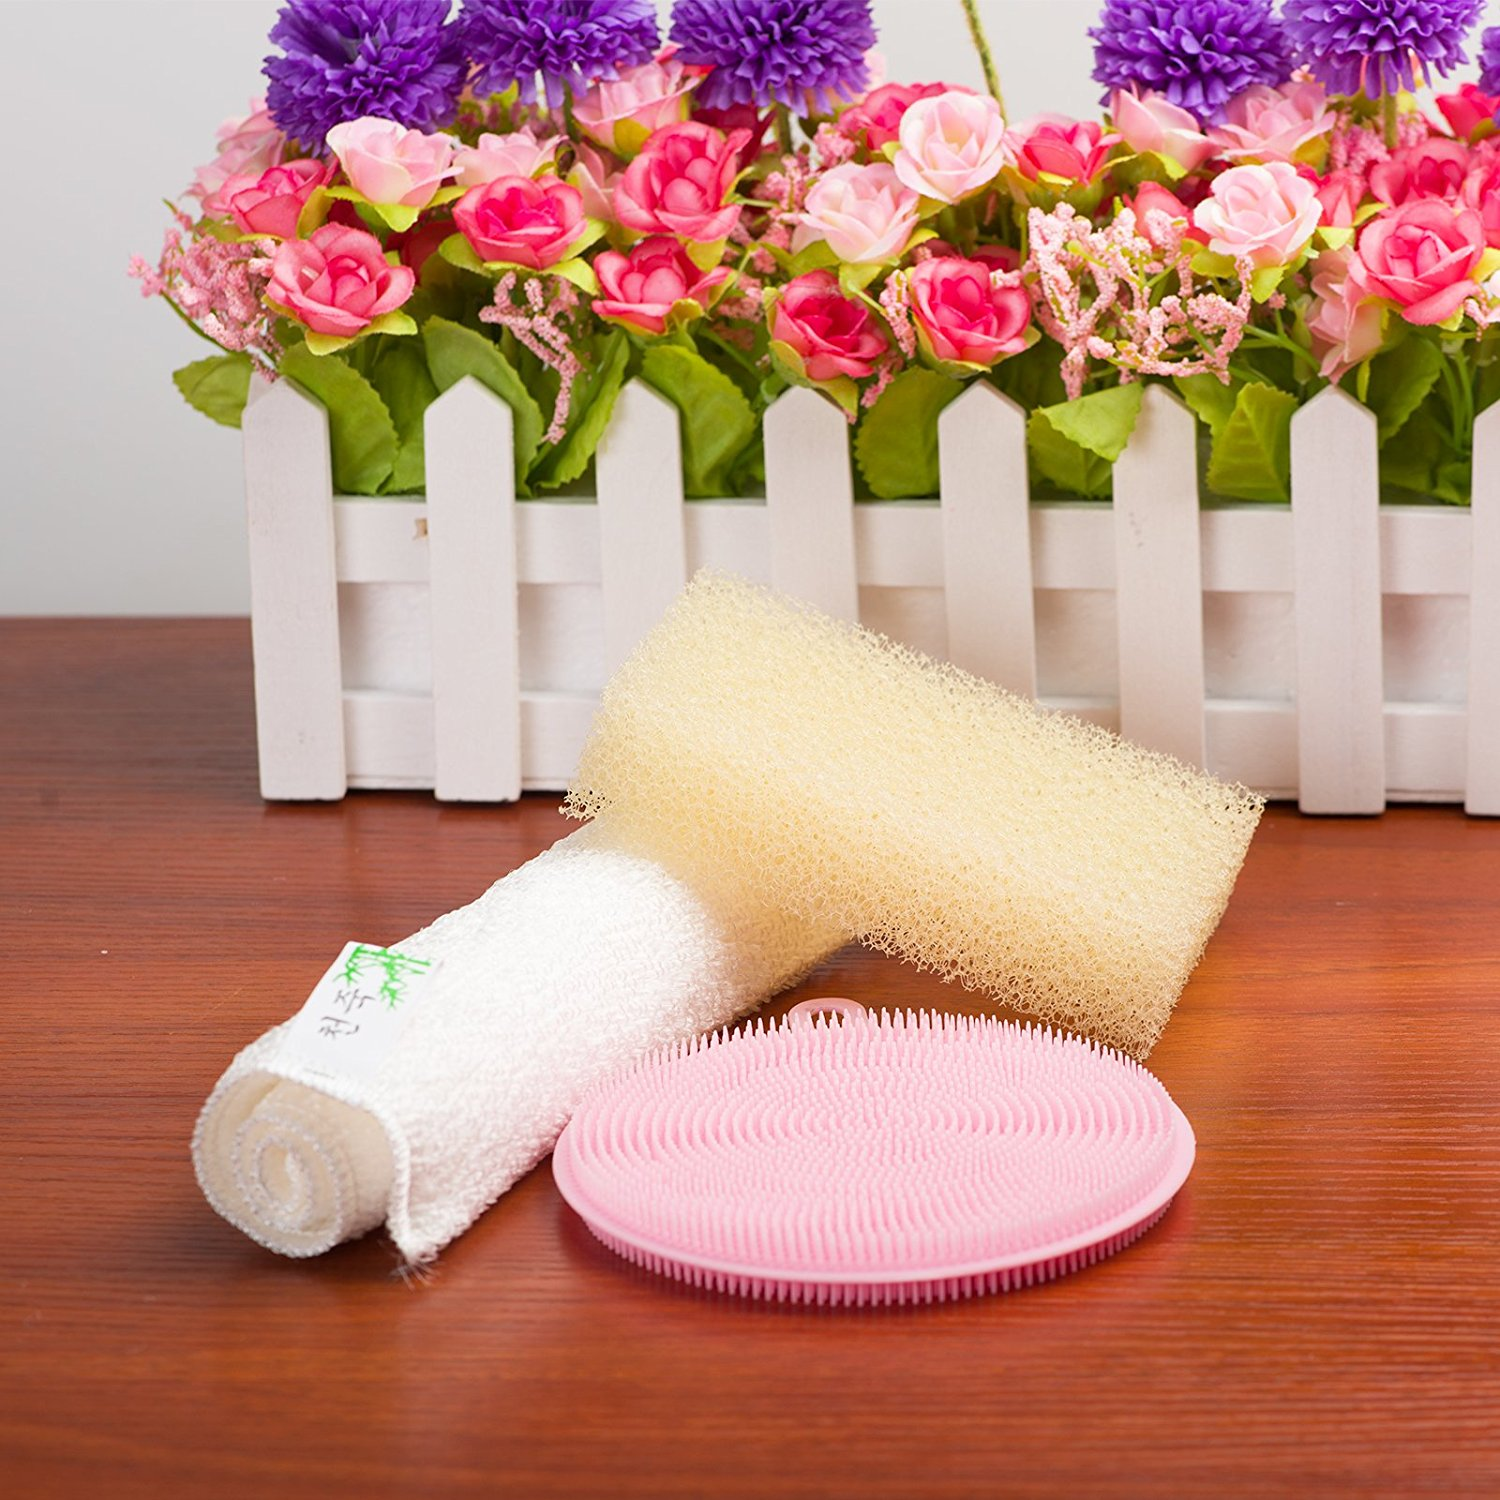 Food-Grade Silicone Non Stick Dishwashing Brush Kitchen Dish Cleaning, Pink Silicone Dish Scrubber, PVC Loofah Structure Dish Wash Sponge, Bamboo Fiber Dishcloth for Kitchen Cleaning(Combination Set)